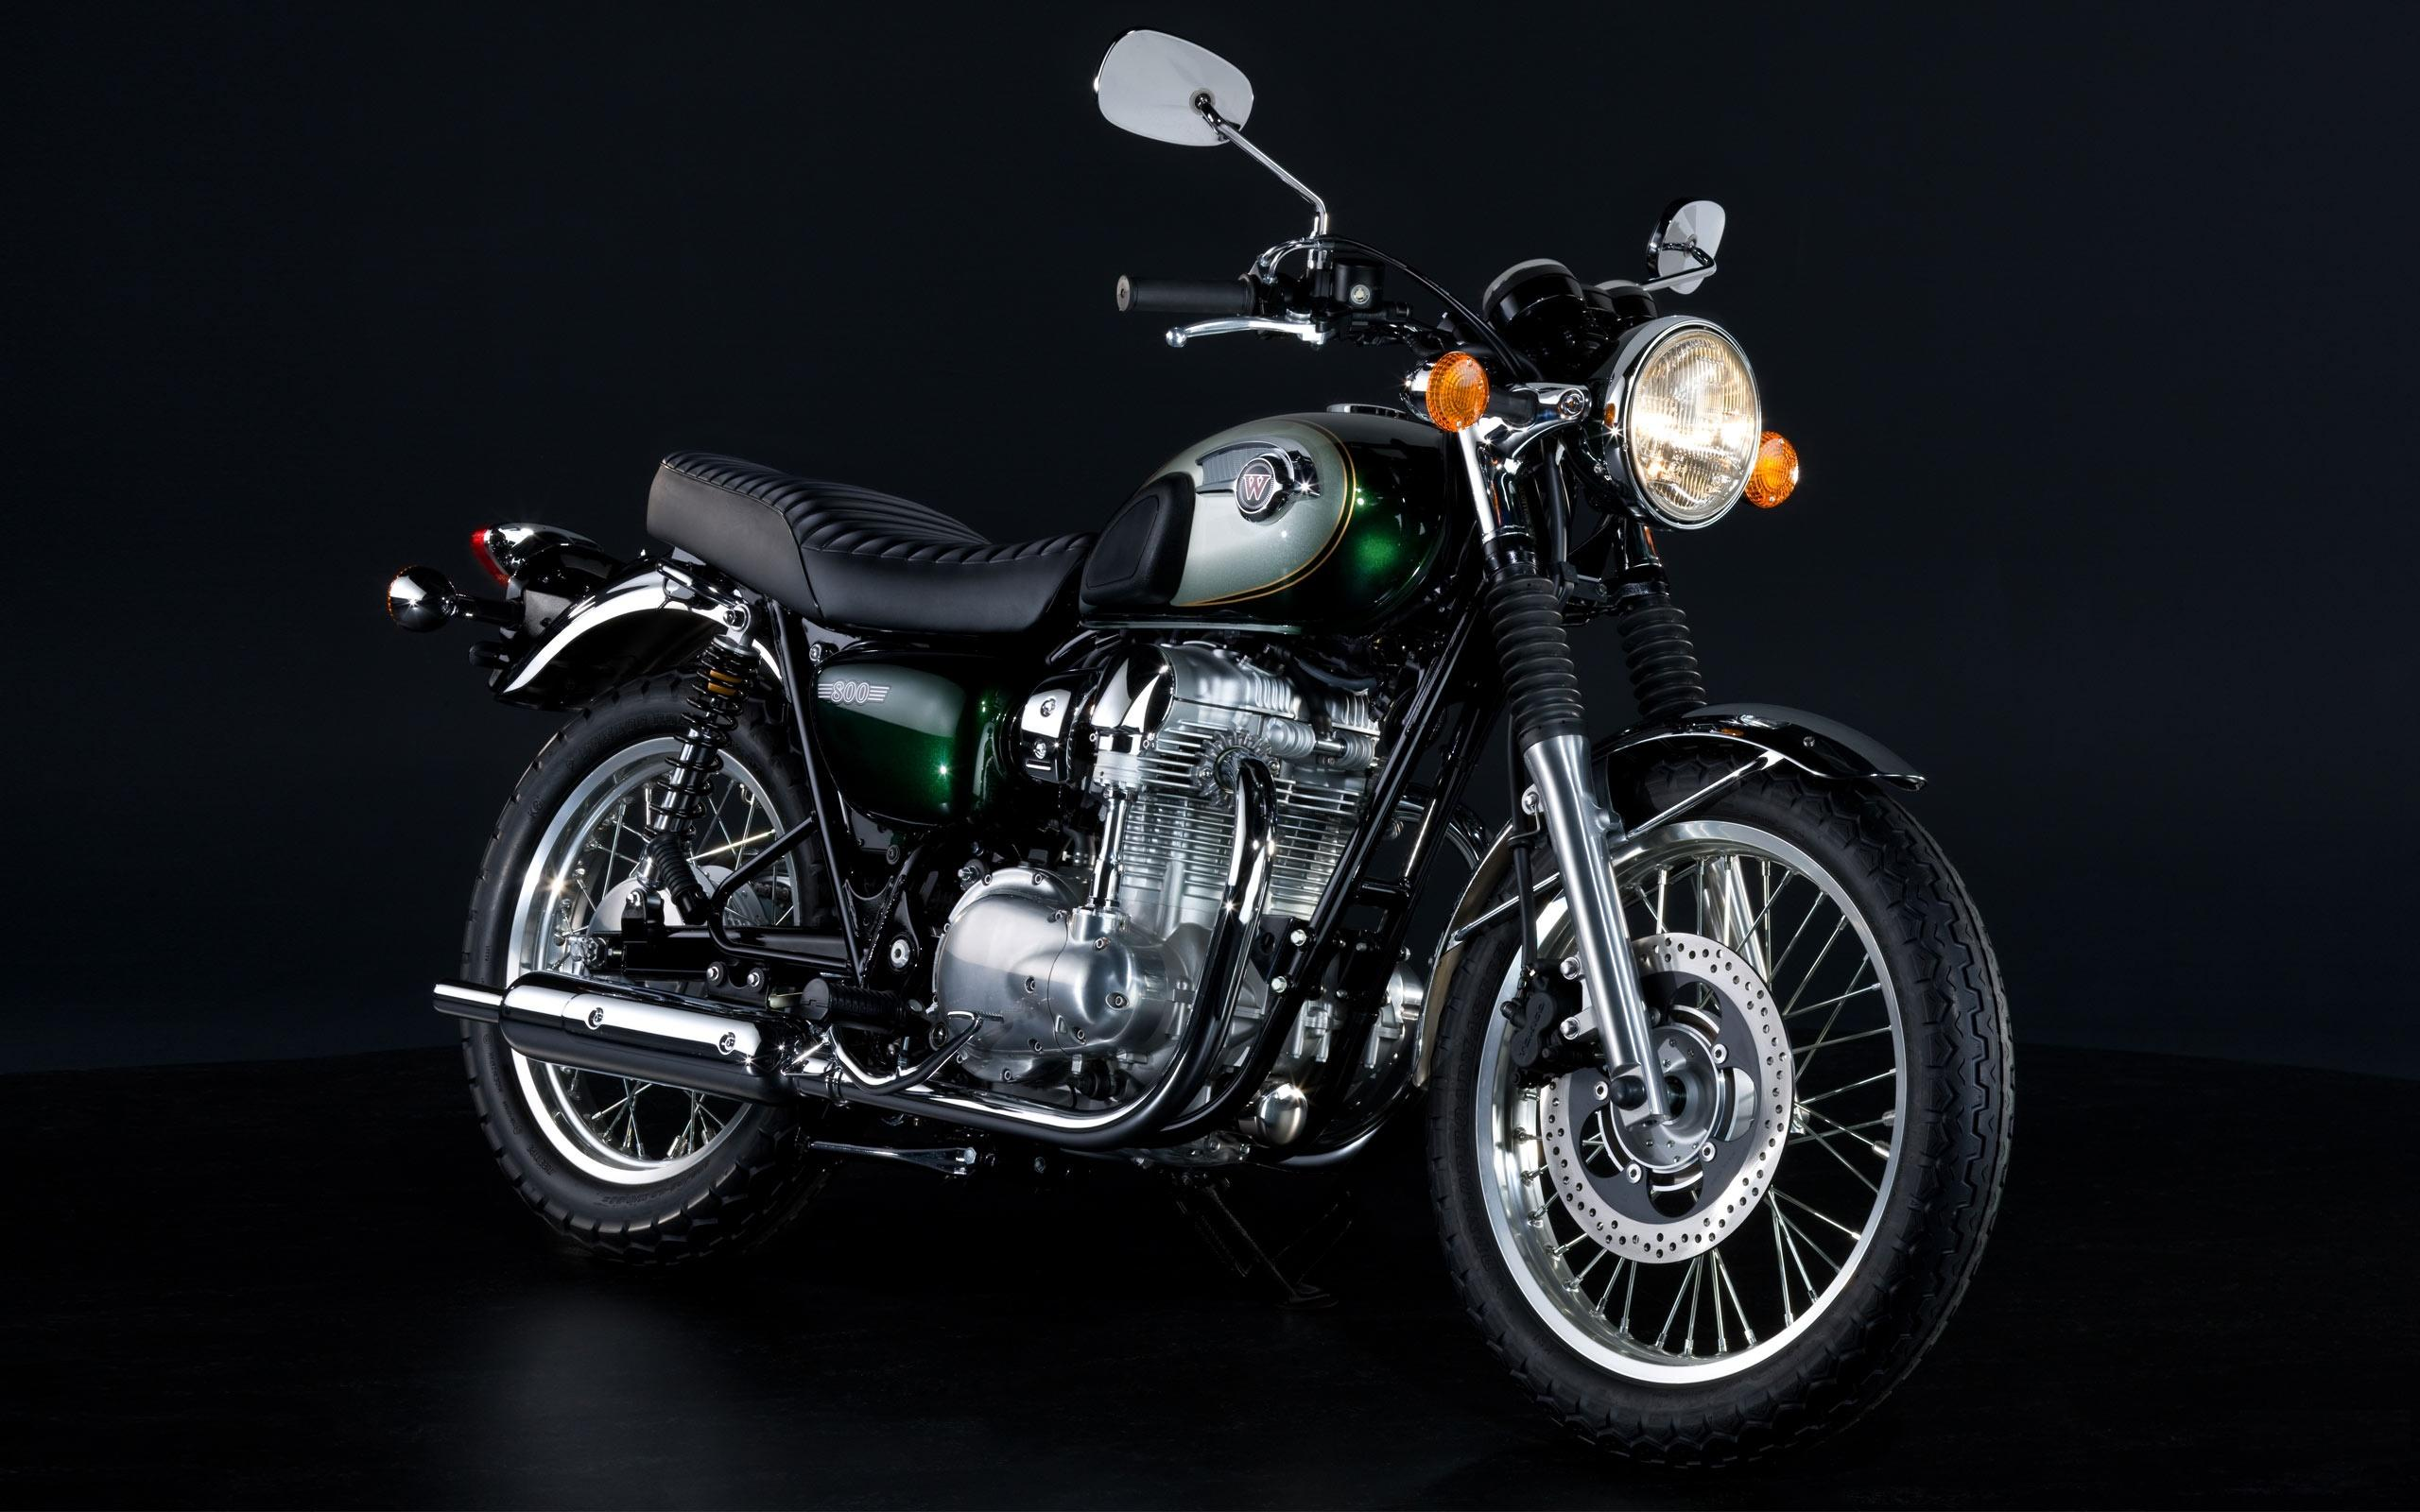 Kawasaki W800 – retro motorcycle